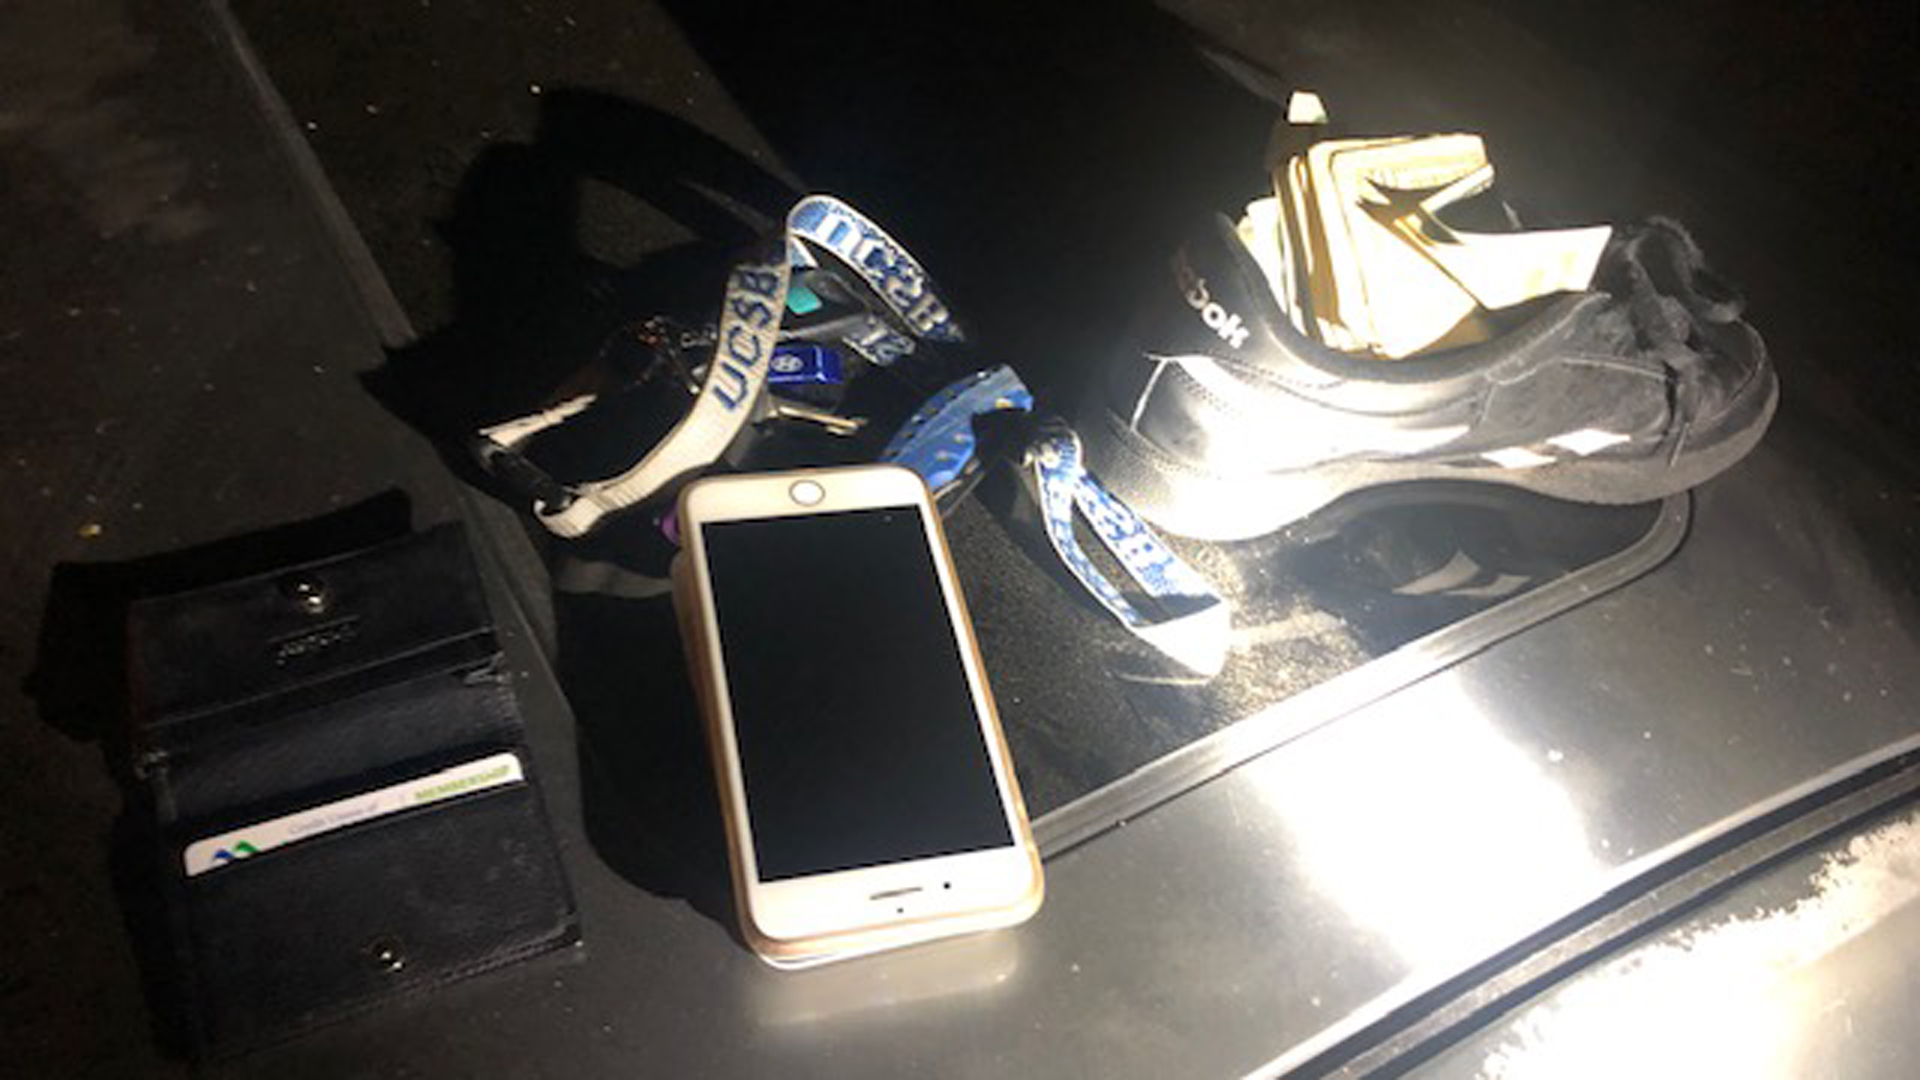 Allegedly stolen items recovered from a home-invasion robbery suspect following his arrest in Pomona on Oct. 3, 2019, are pictured in this photo provided by the Pomona Police Department.